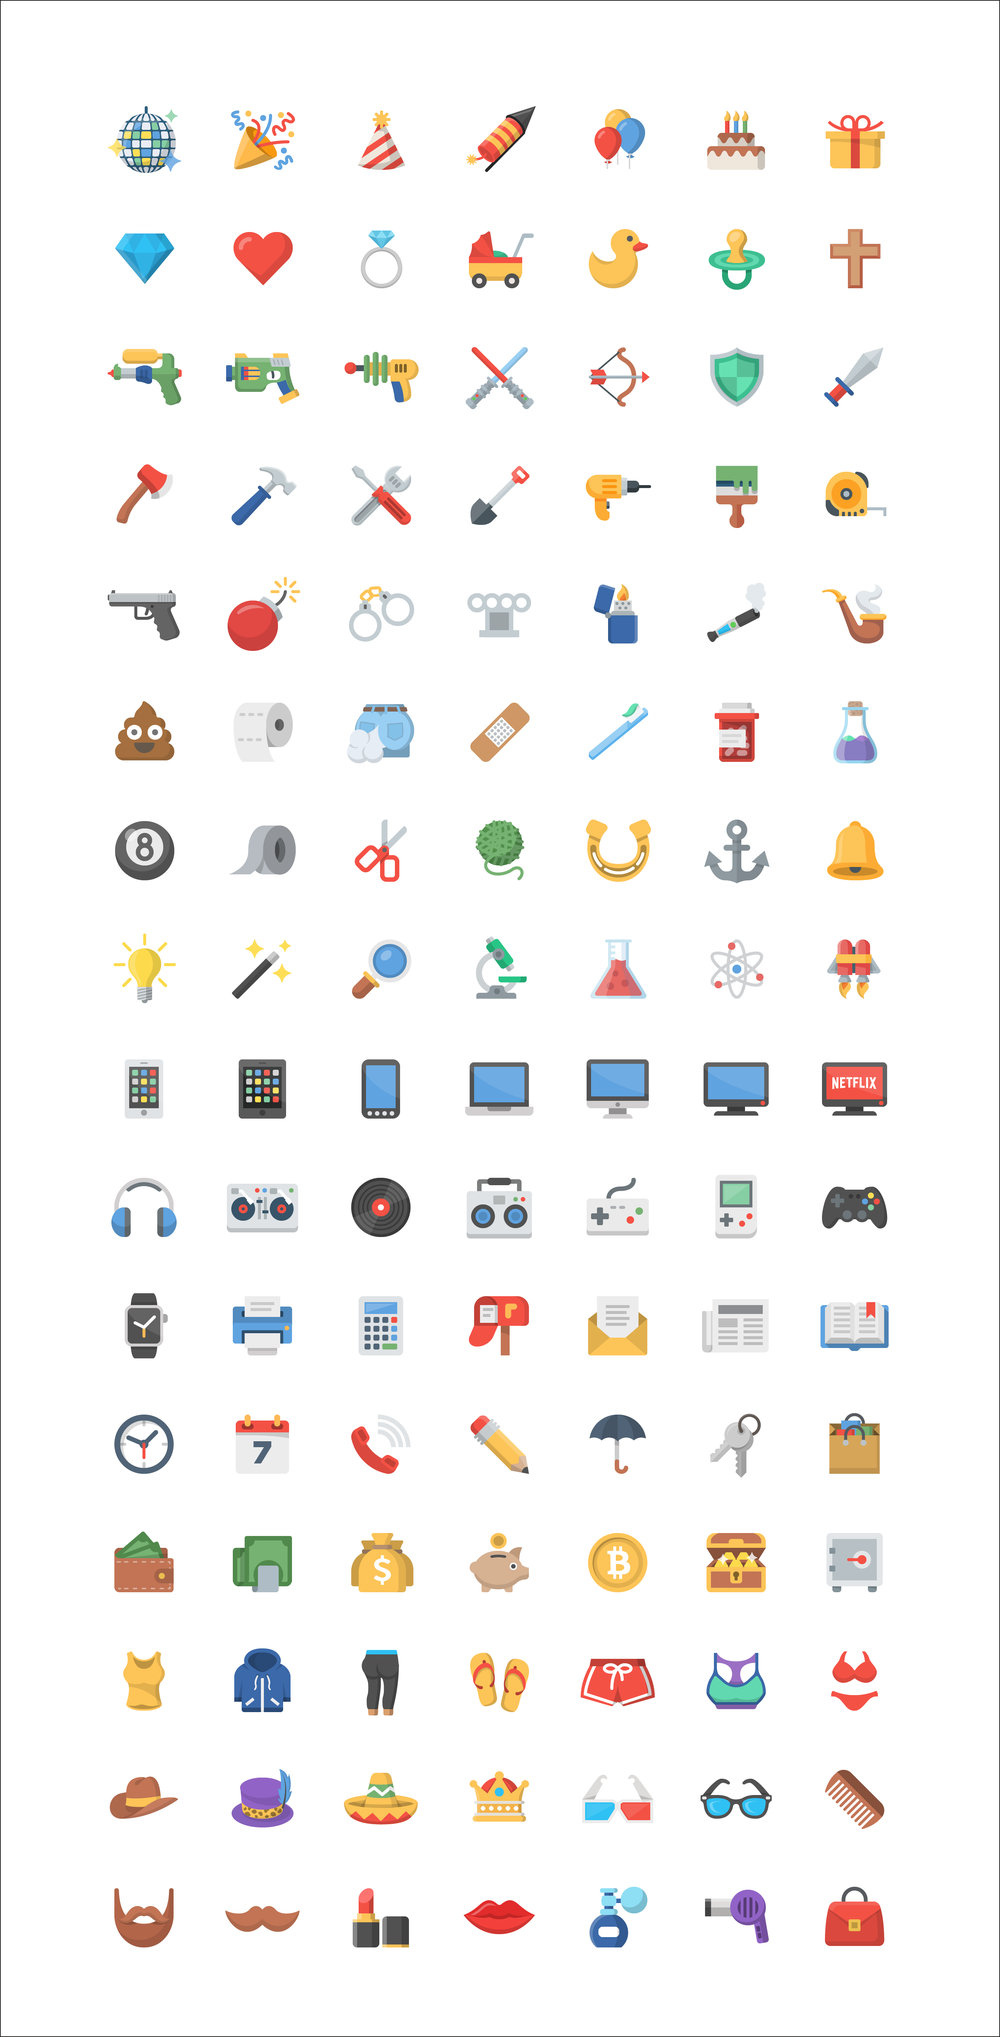 Objects@2x.png